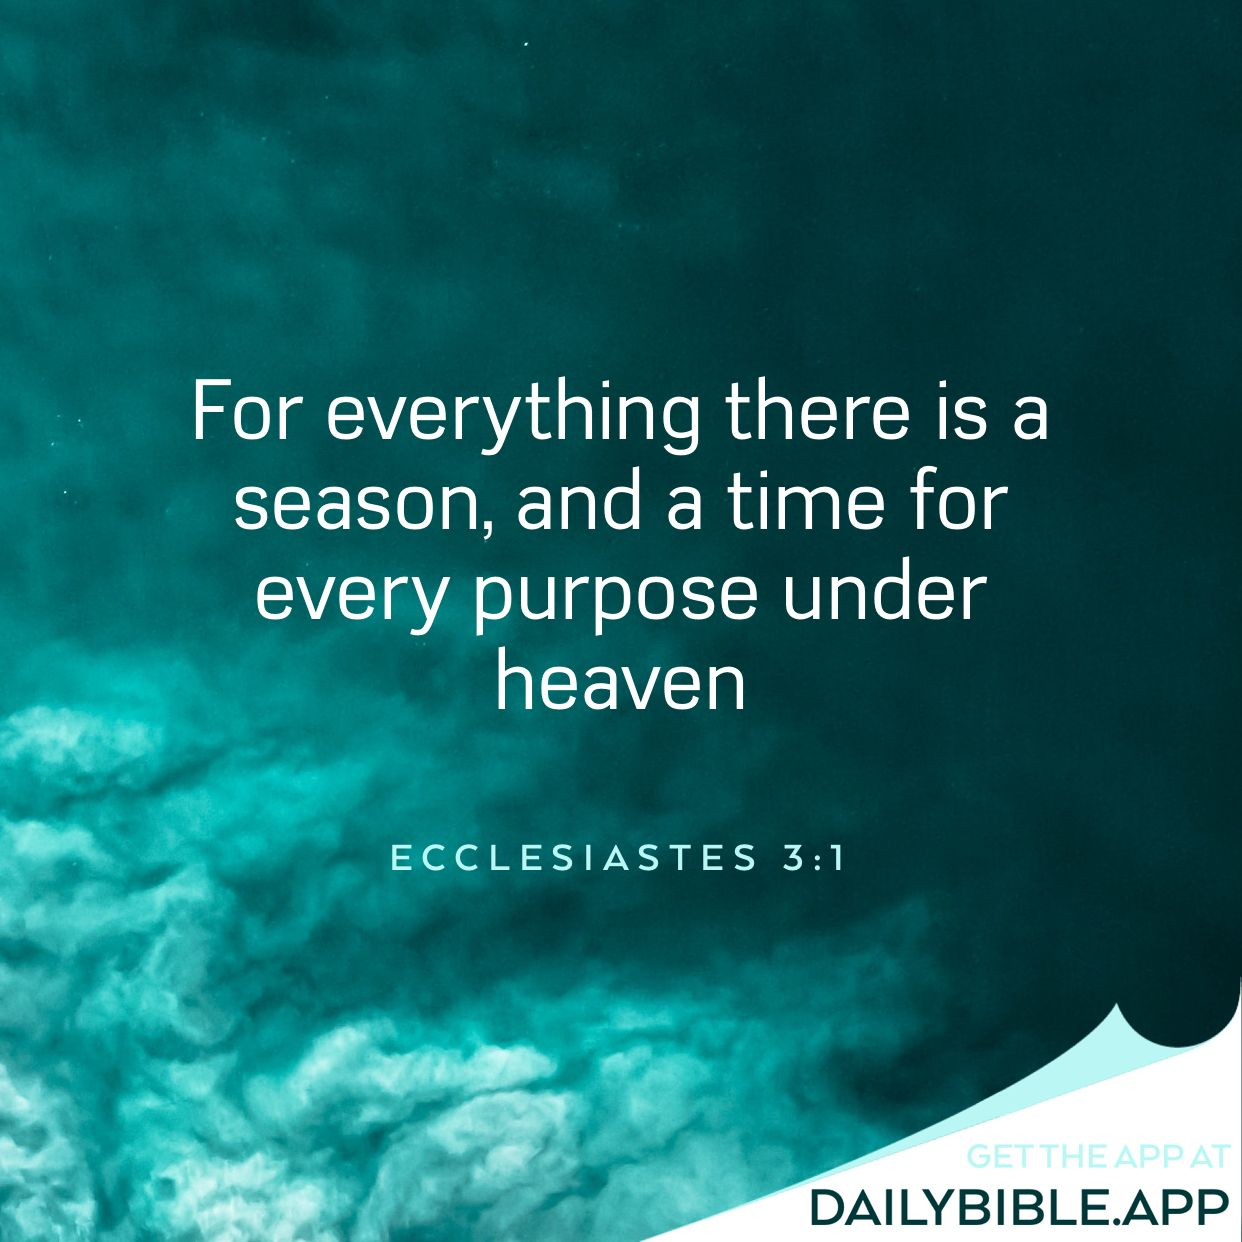 Pin by Elizabeth Starr on Bible Verses | Bible verses, Godly